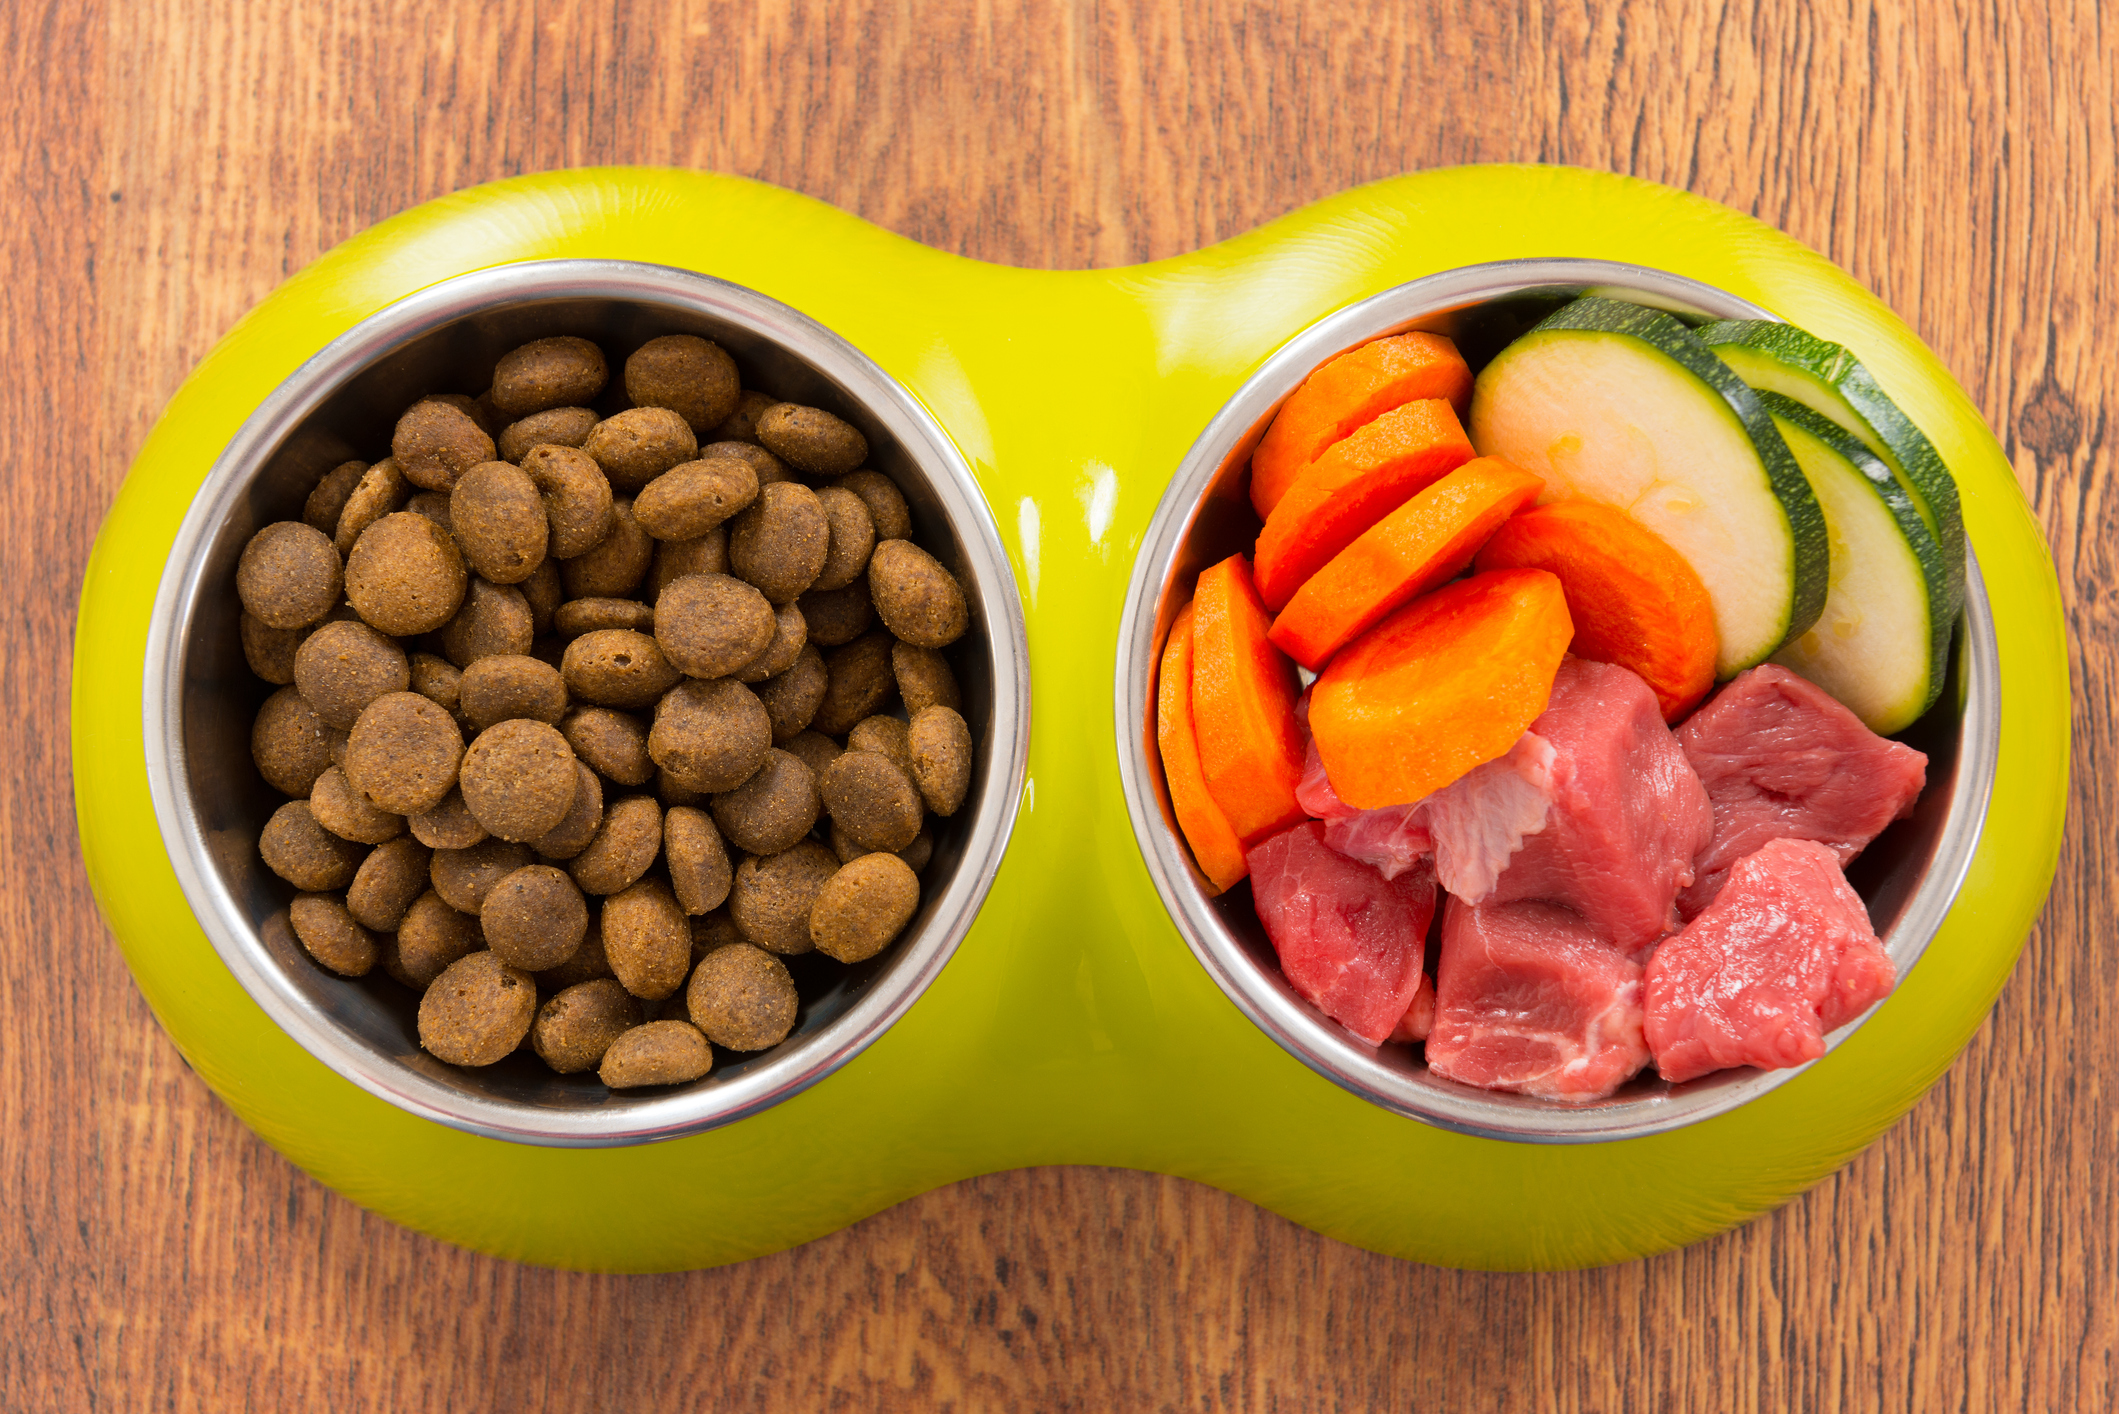 Two dog food bowls, one with kibble and the other containing raw meat and vegetables